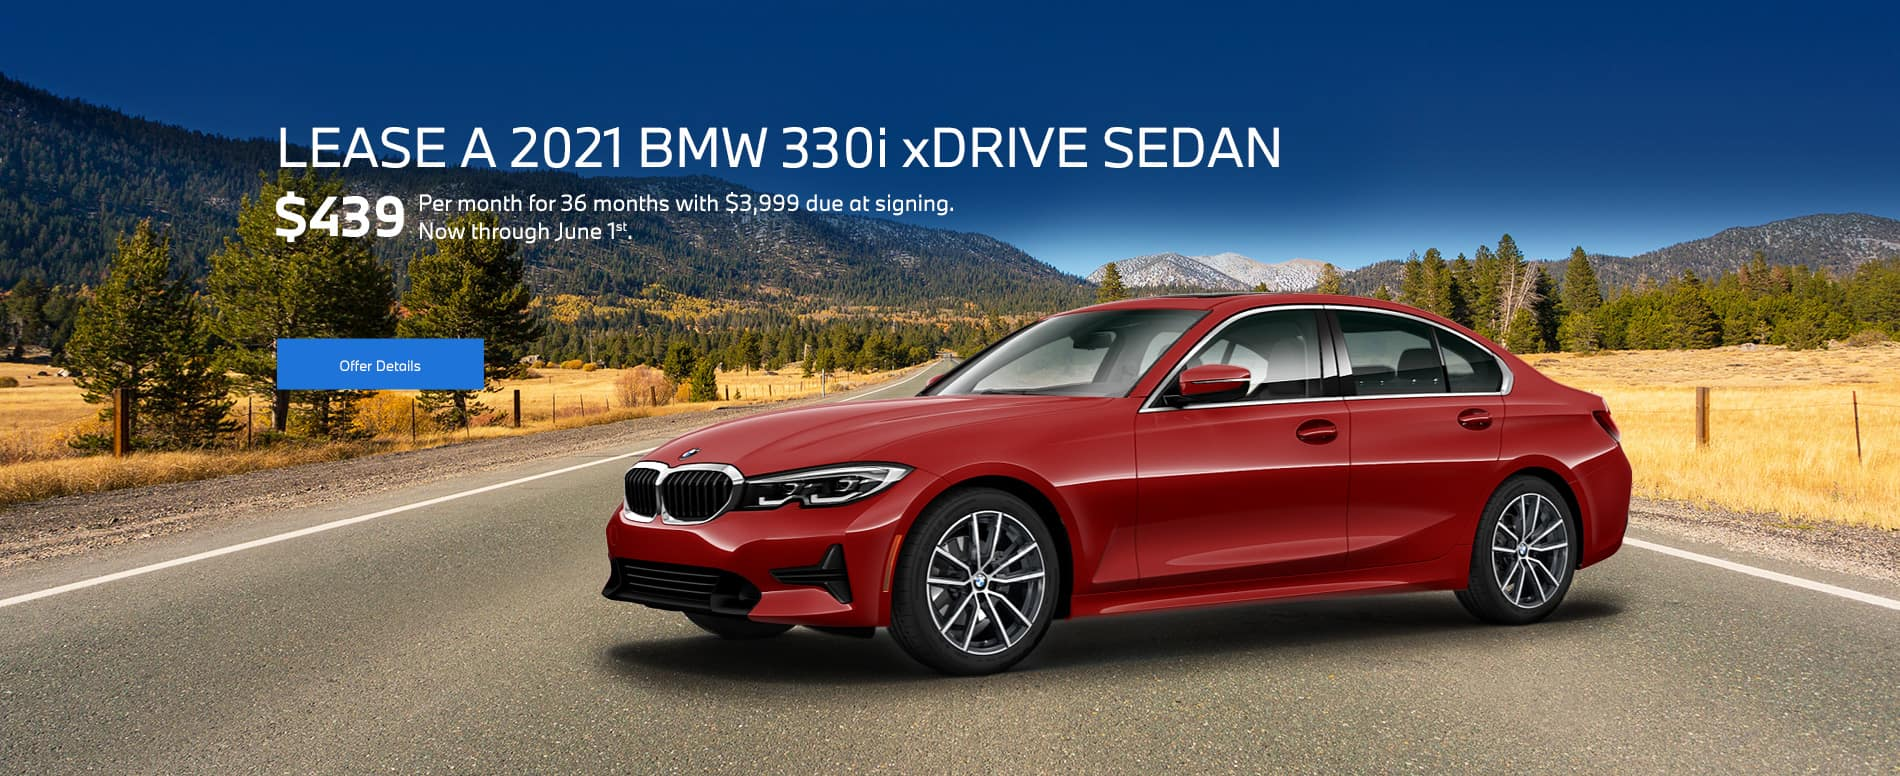 A new red 2021 BMW 330i leasing for $439 per month for 36 months with $3,999 due at signing